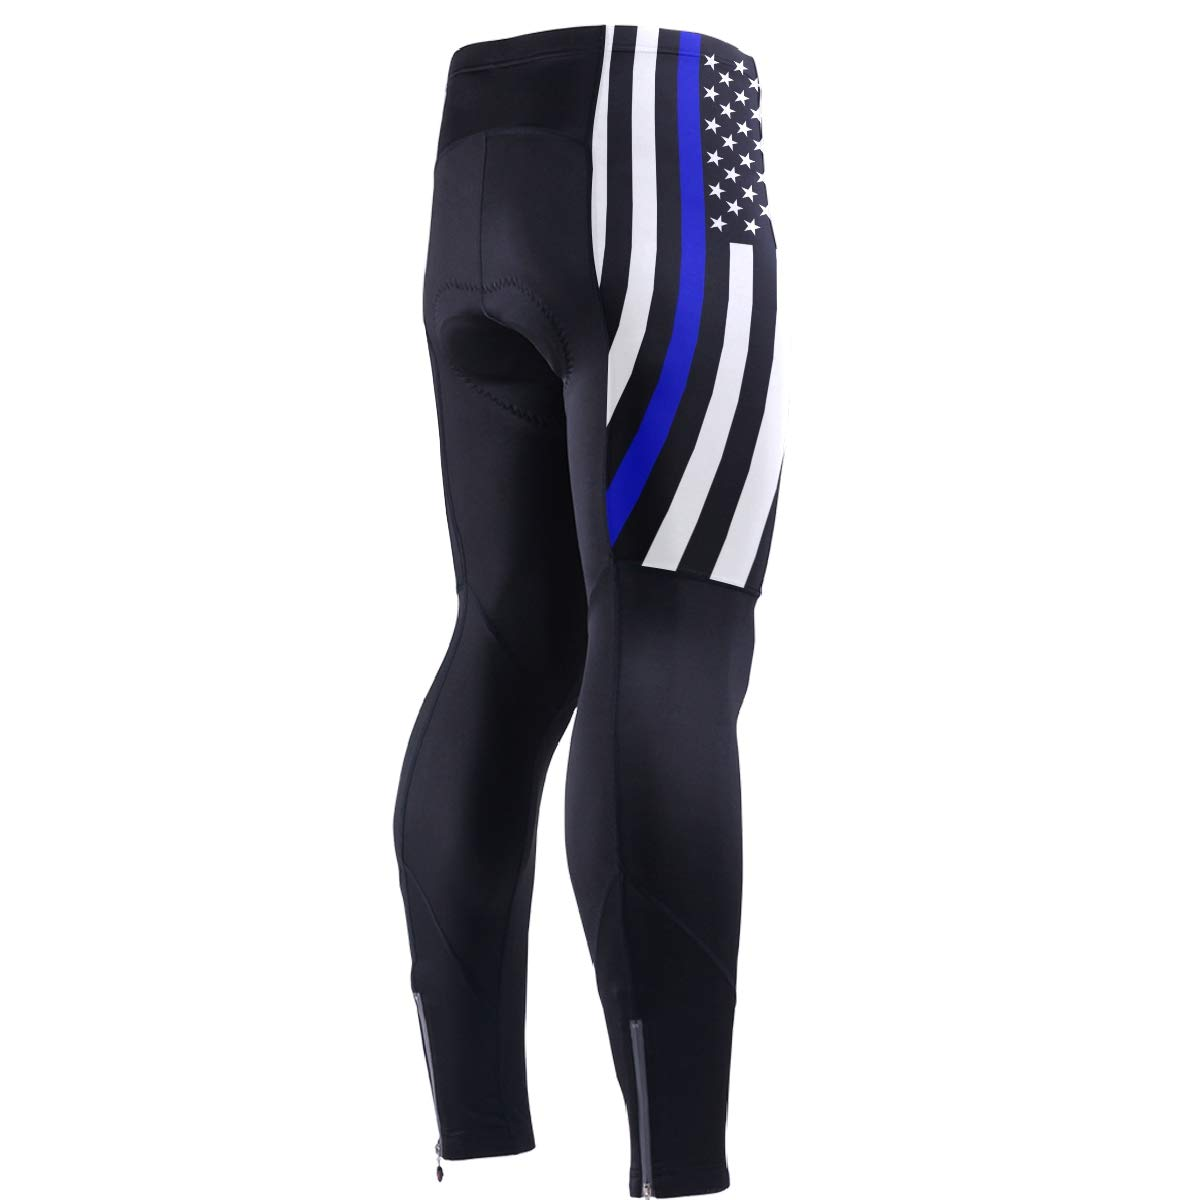 CHINEIN Men's Cycling Jersey Long Sleeve with 3 Rear Pockets Pants Police Thin Blue Line American Flag by CHINEIN